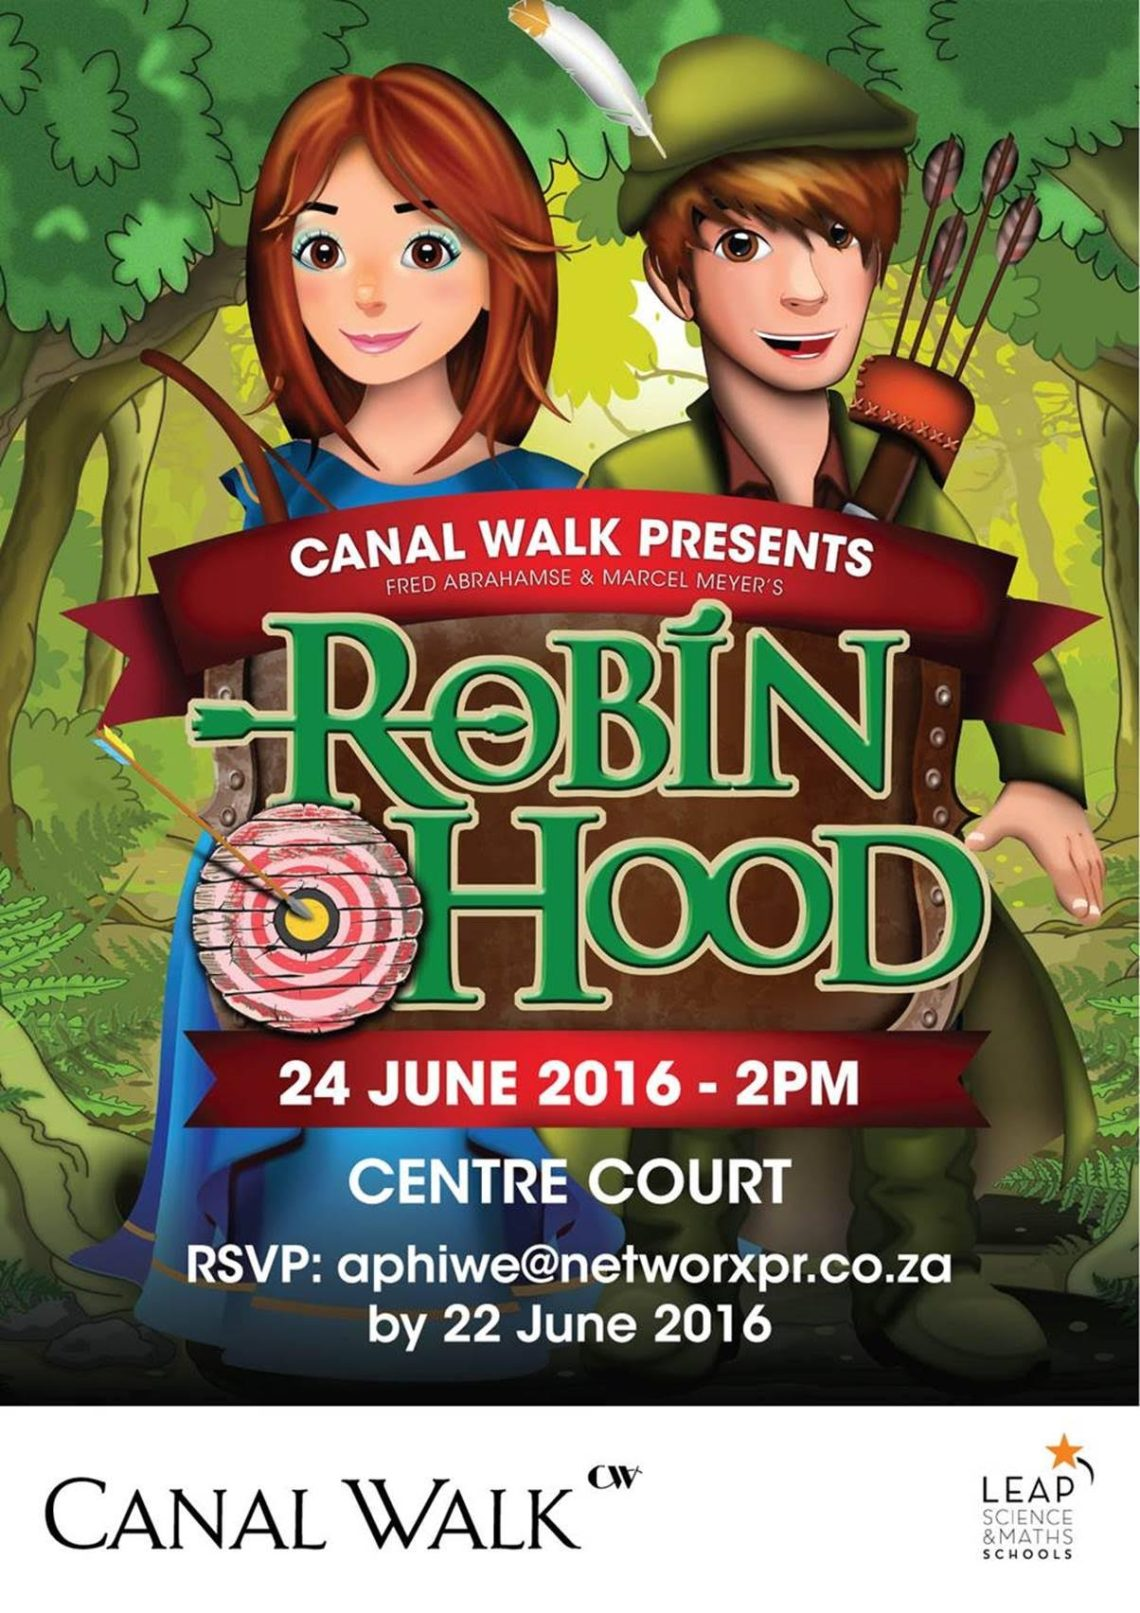 http://www.canalwalk.co.za/events.htm